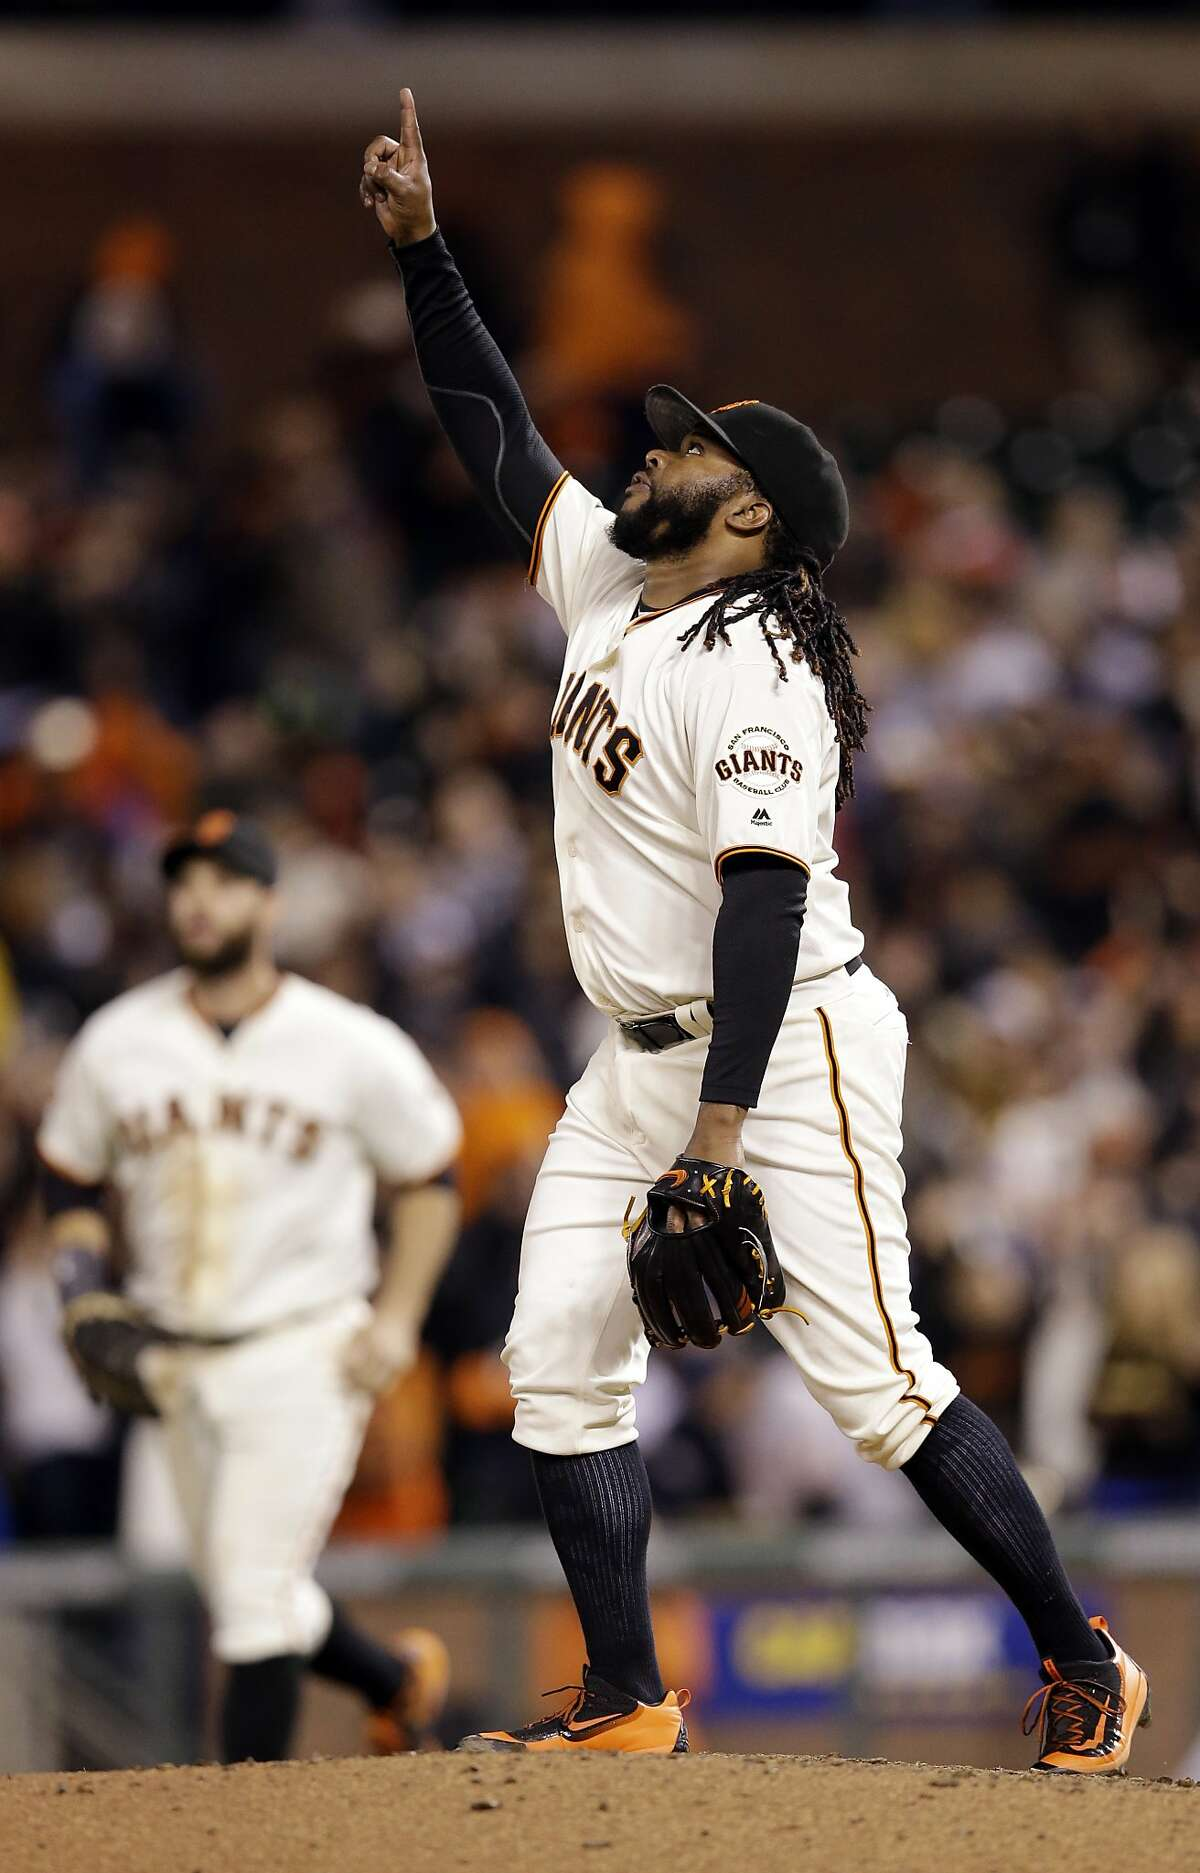 San Francisco Giants starting pitcher Johnny Cueto celebrates on the mound after pitching a seven-hit shutout against the San Diego Padres during a baseball game Tuesday, April 26, 2016, in San Francisco. San Francisco won 1-0. (AP Photo/Marcio Jose Sanchez)